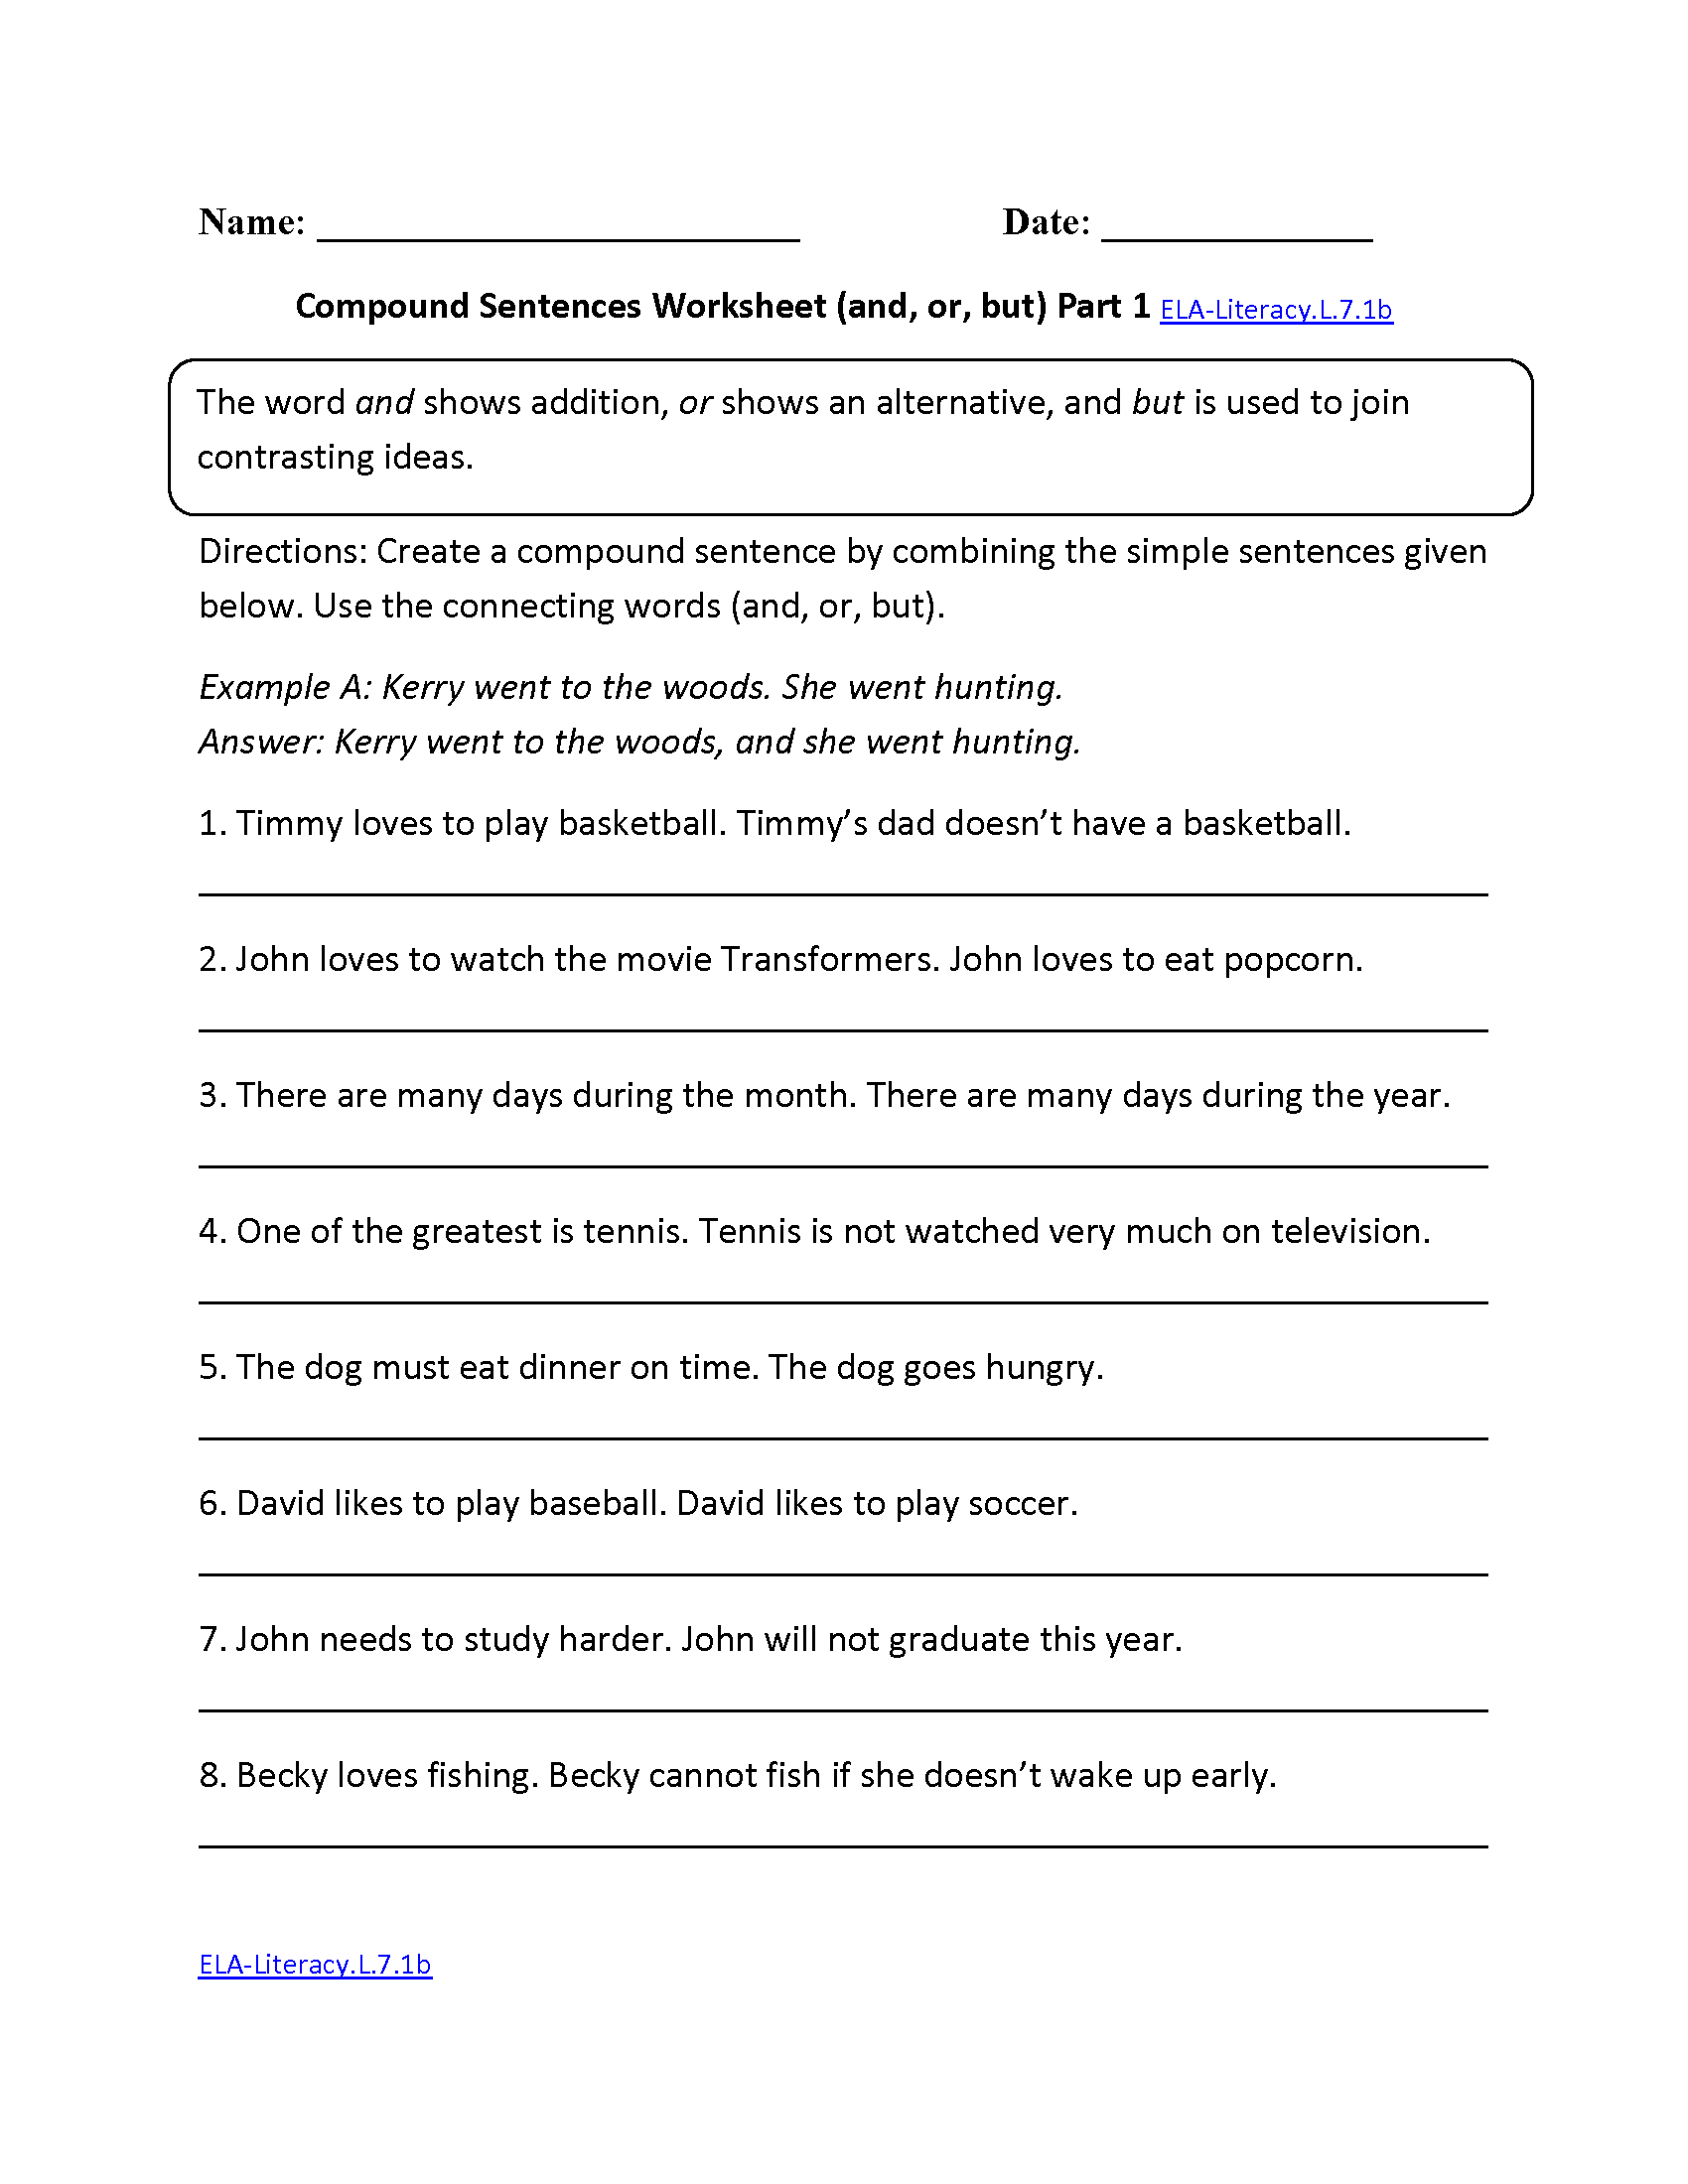 worksheet Commonly Confused Words Worksheet 7th grade common core language worksheets compound sentences worksheet ela literacy l 7 1b worksheet